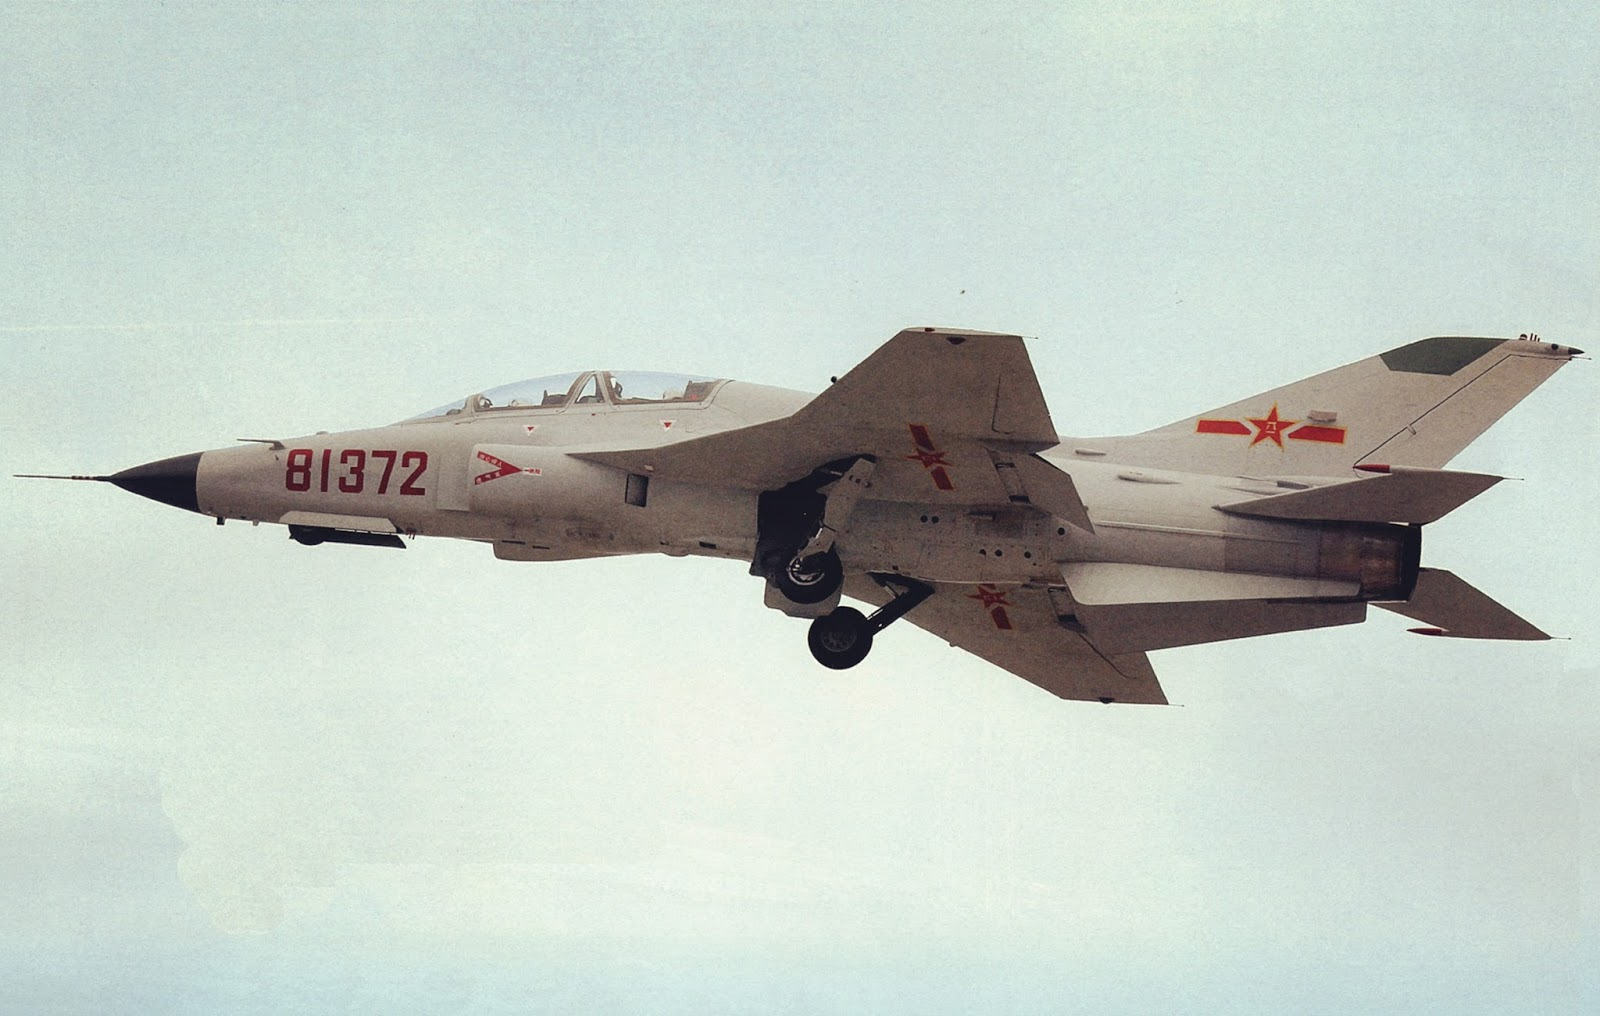 JL-9/FTC-2000 (Fighter Trainer China-2000) Fighter Jet ...